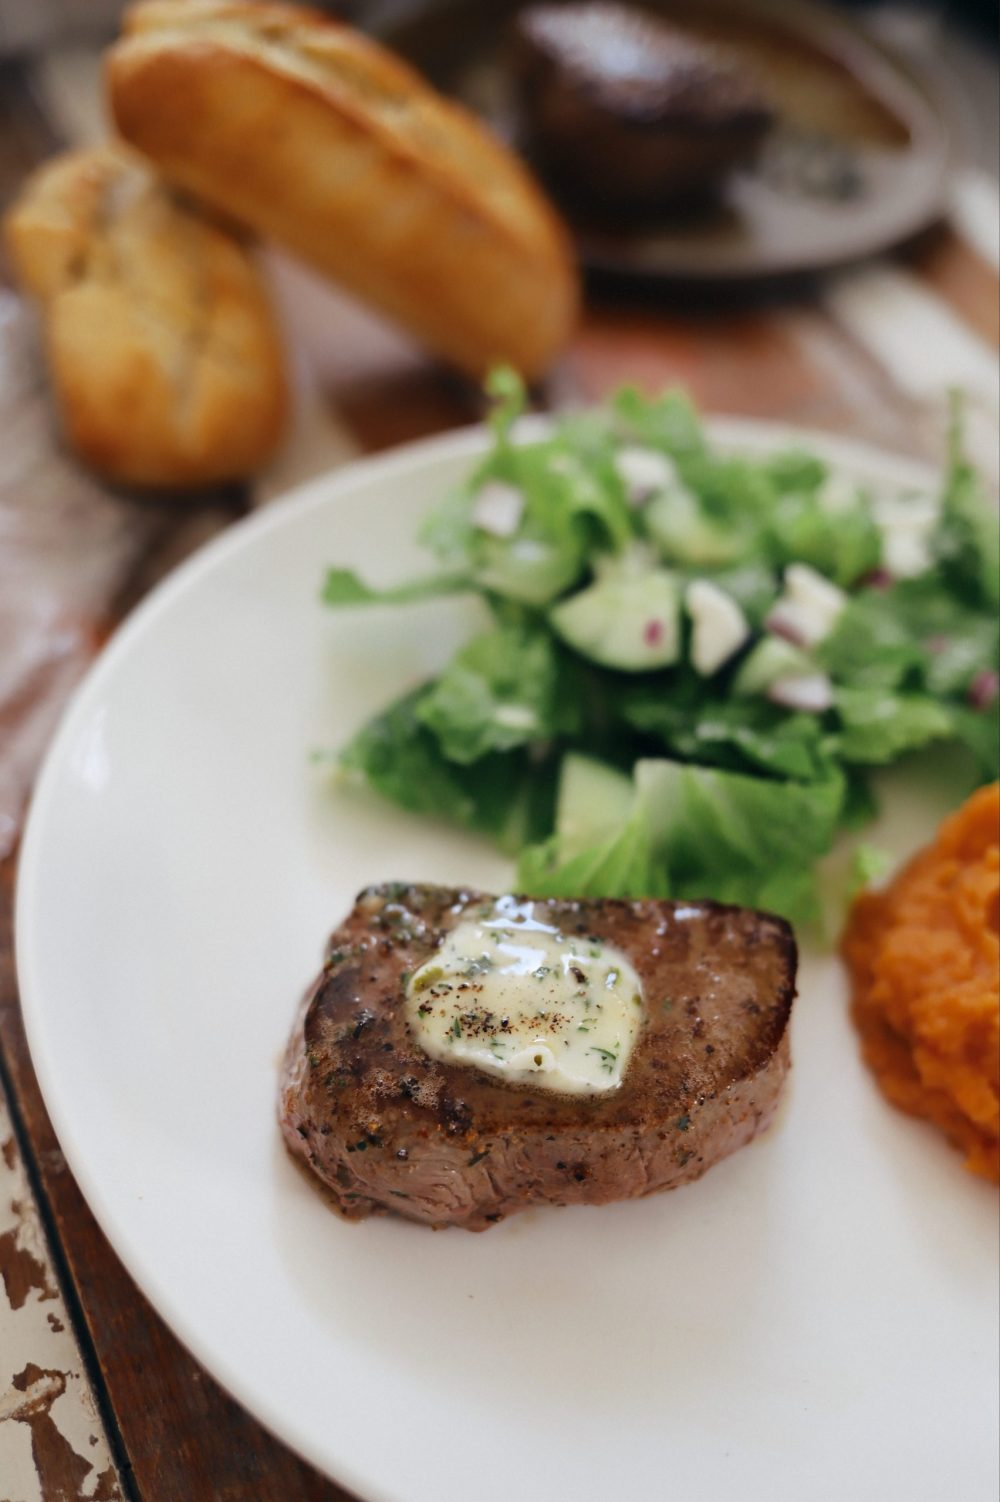 Homemade Steak Butter: How to Make an Easy Steakhouse Herb Butter for Steak  Steak Butter by popular Florida lifestyle blog, Fresh Mommy Blog: image of a piece of steak on a white plate with some herb butter on top of it.